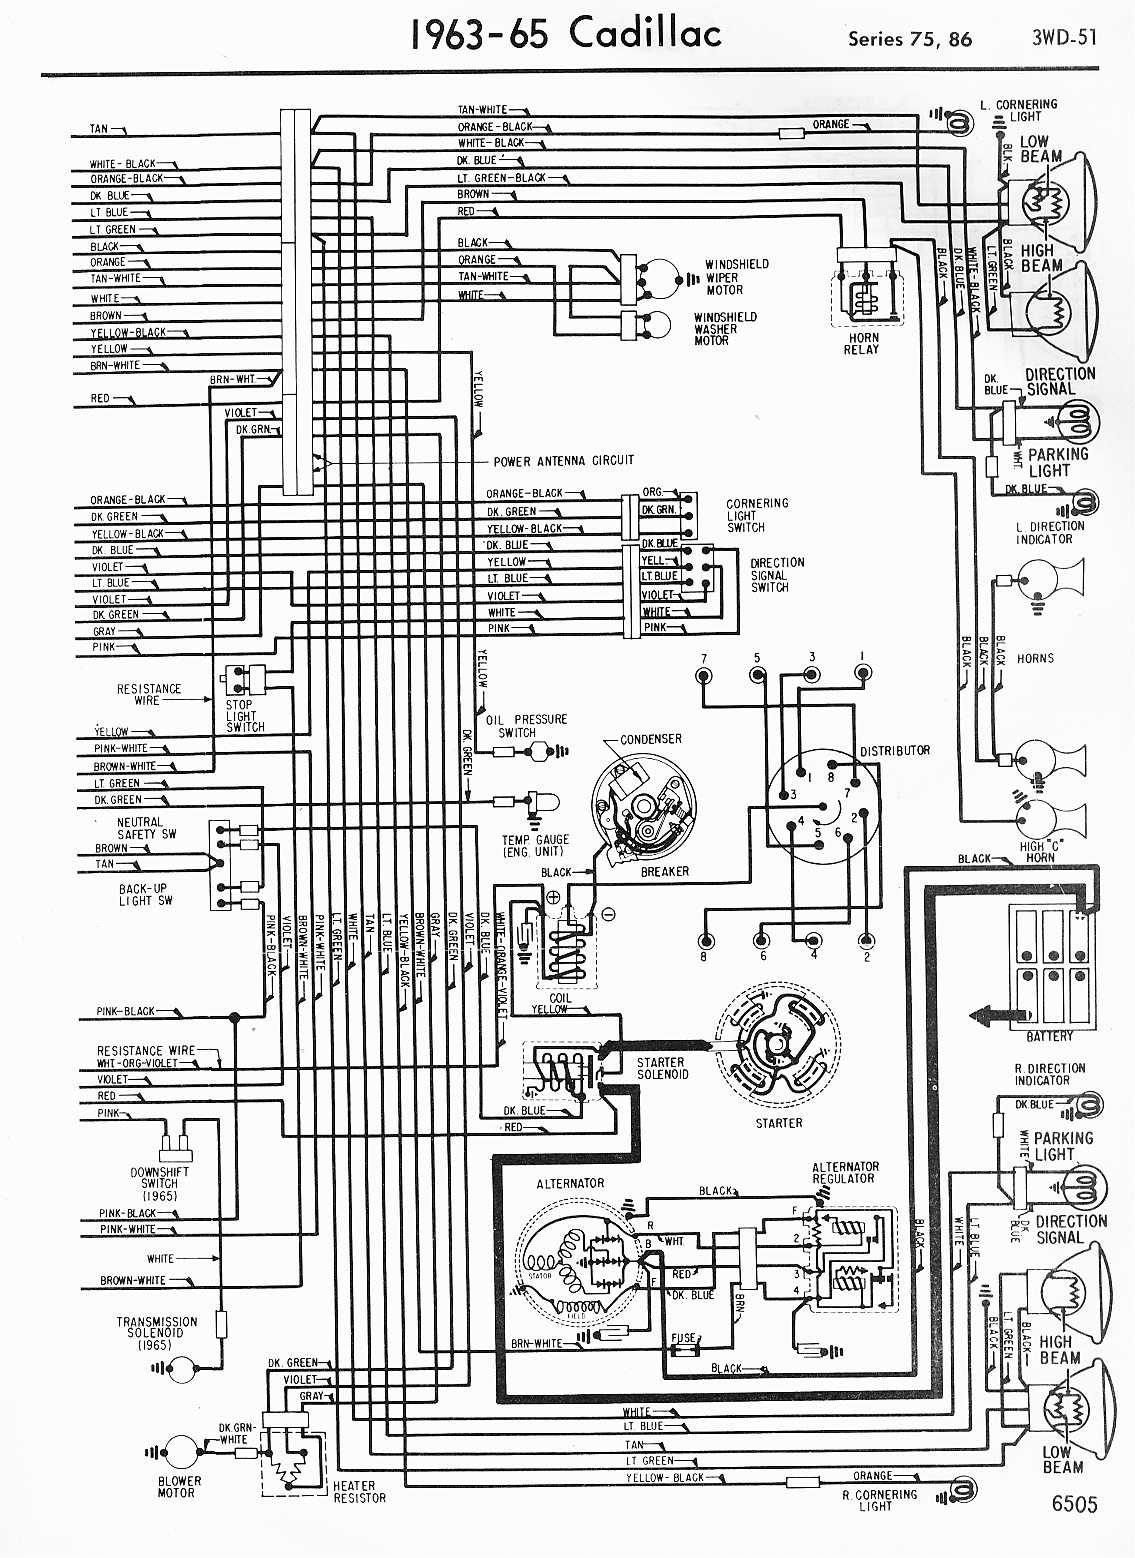 Awesome 03 Cadillac Cts Fuse Box Wiring Library Wiring Cloud Cranvenetmohammedshrineorg